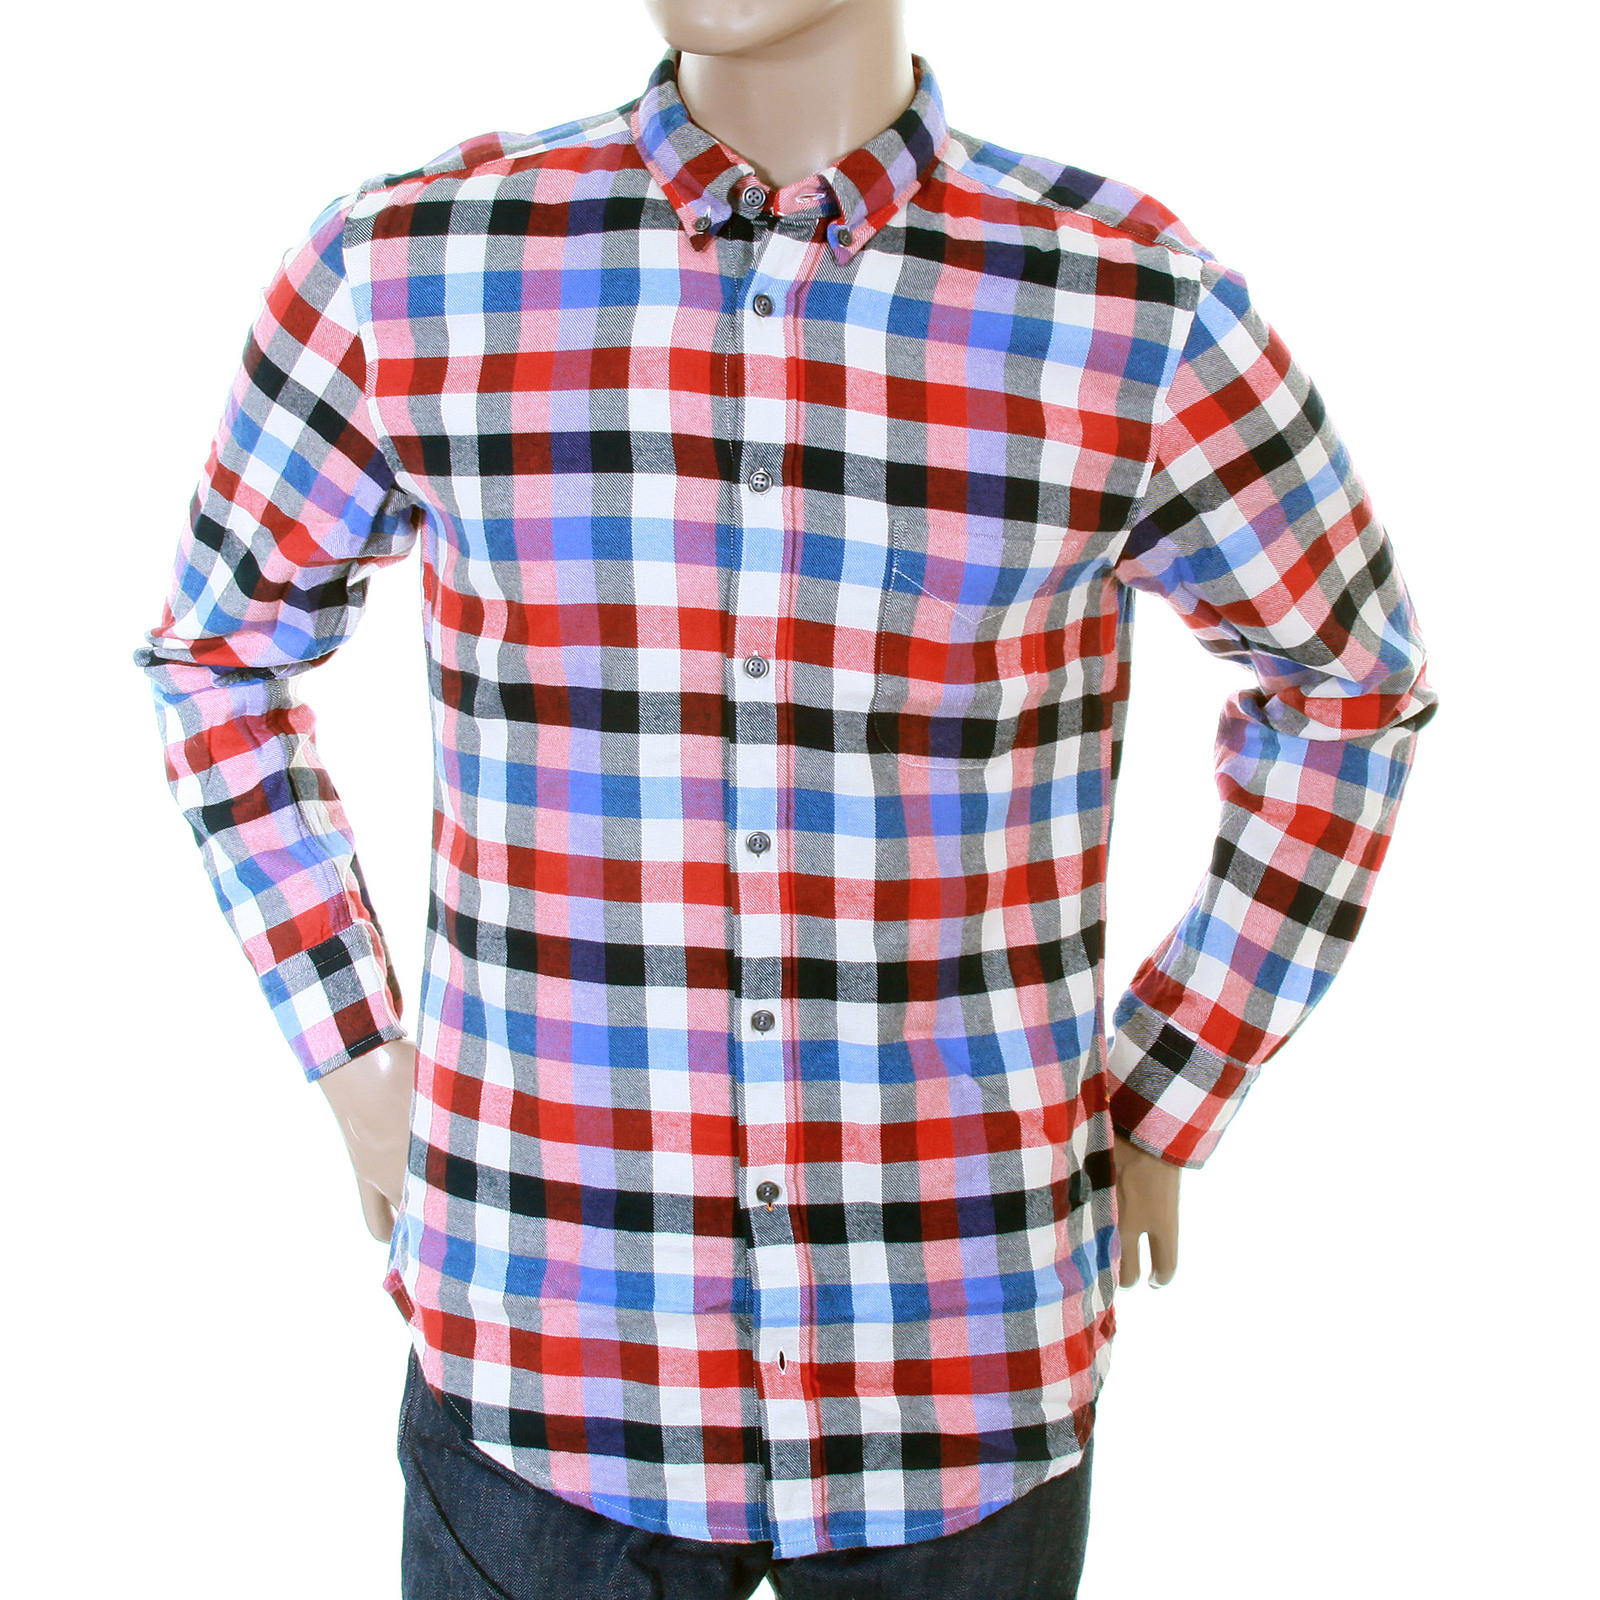 7acdf9f8555b Hugo Boss Orange Label mens cube check 50233112 EquatorE shirt BOSS2867 at  Togged Clothing